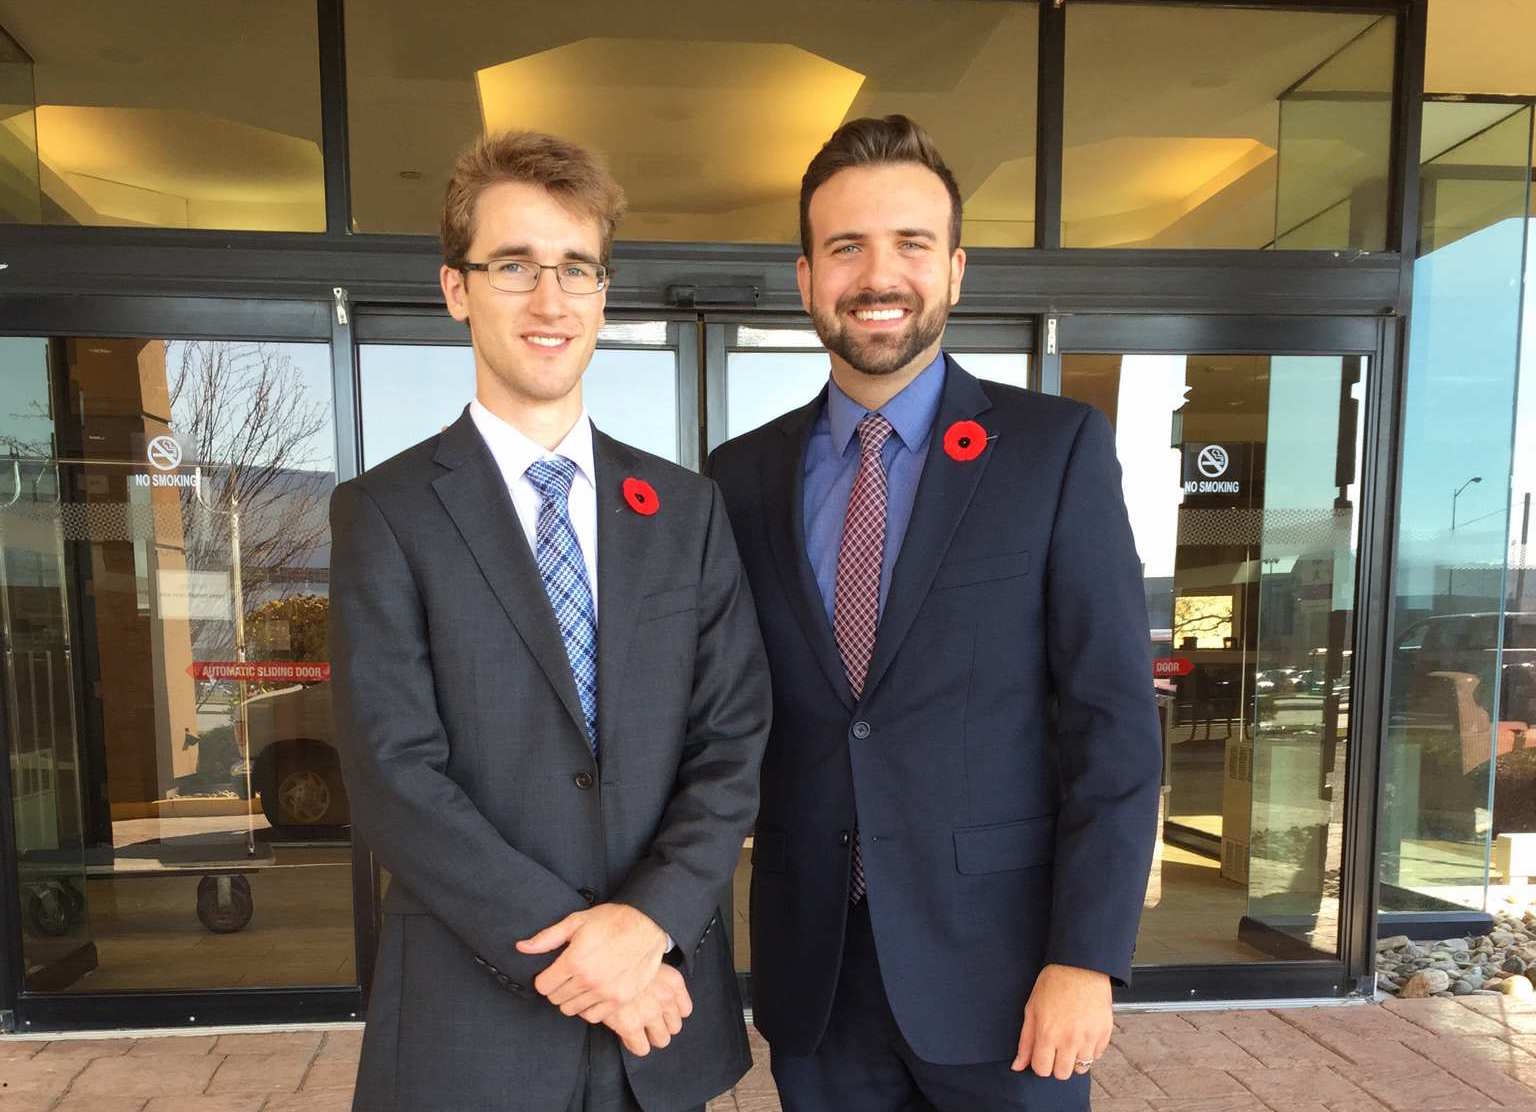 LF's Associate Counsel John Sikkema, left, and Executive Director Derek Ross, right, after completing their submissions to the External Panel on November 3, 2015.